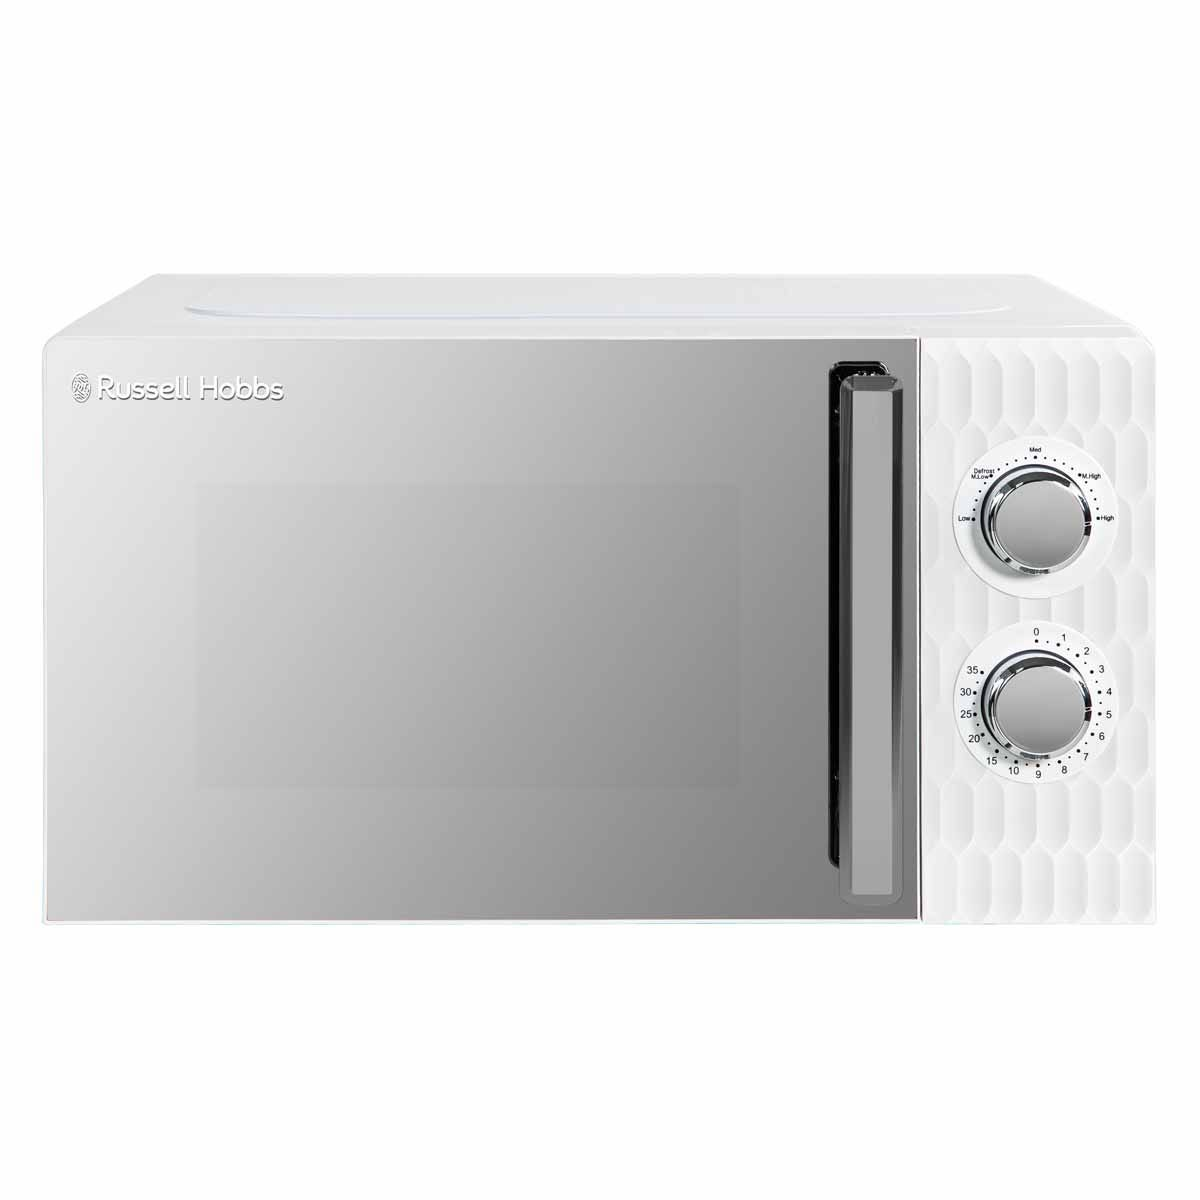 Russell Hobbs RHMMM715 Honeycomb 17L 700W Manual Microwave - White